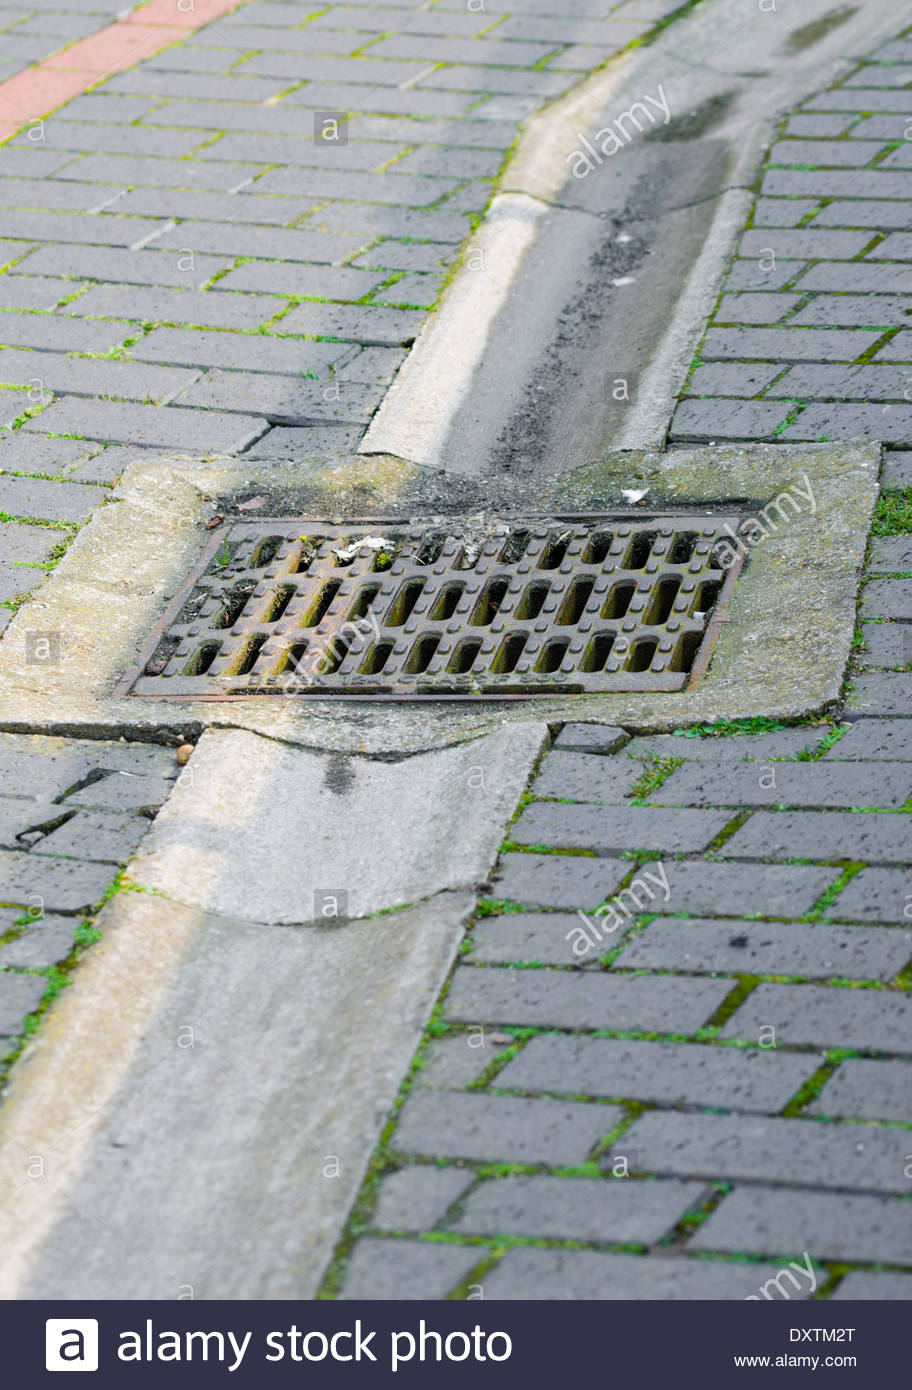 Rainwater ground gutter and drain stock photo royalty for Outdoor ground drains